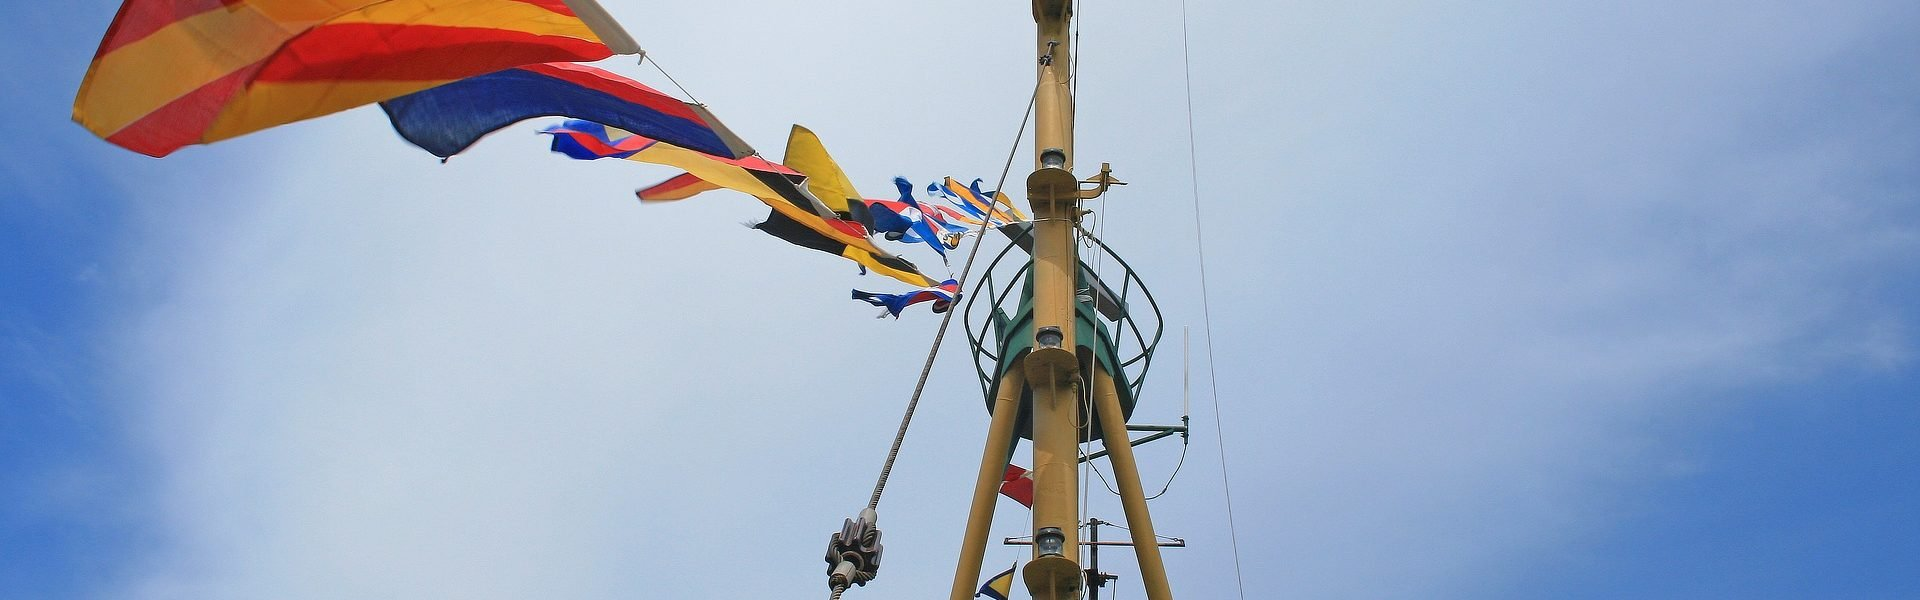 flags-on-tugboat-1731701_1920